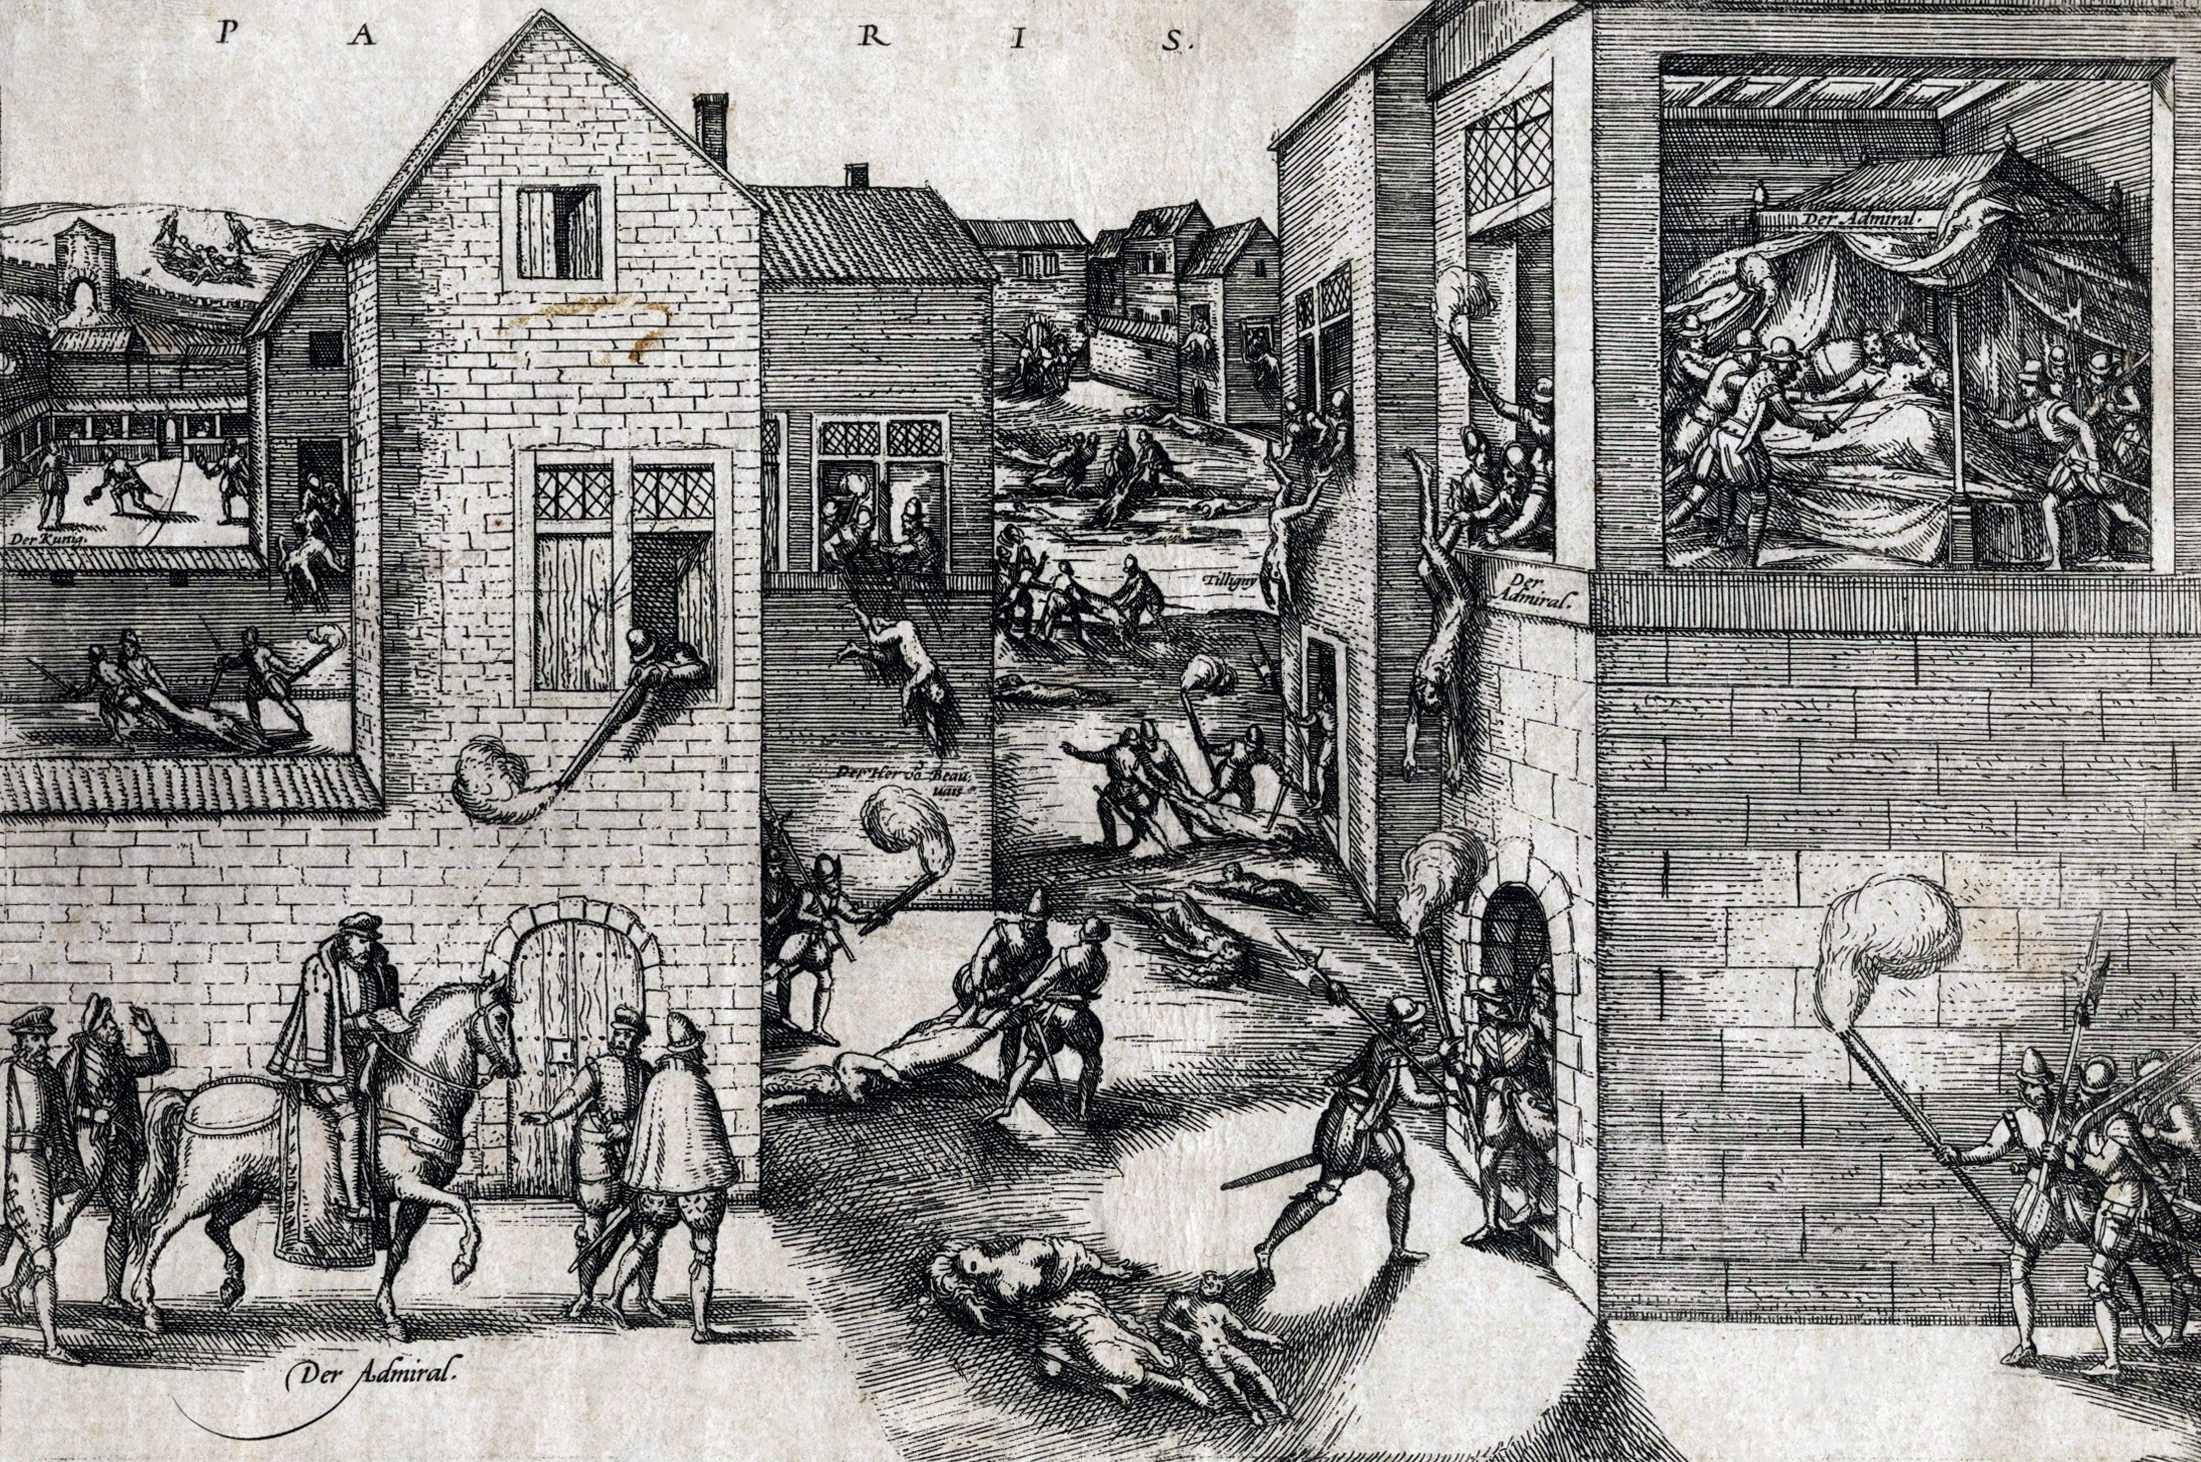 This popular print shows the attempted assassination of Coligny at left, his subsequent murder at right, and scenes of the general massacre in the streets.